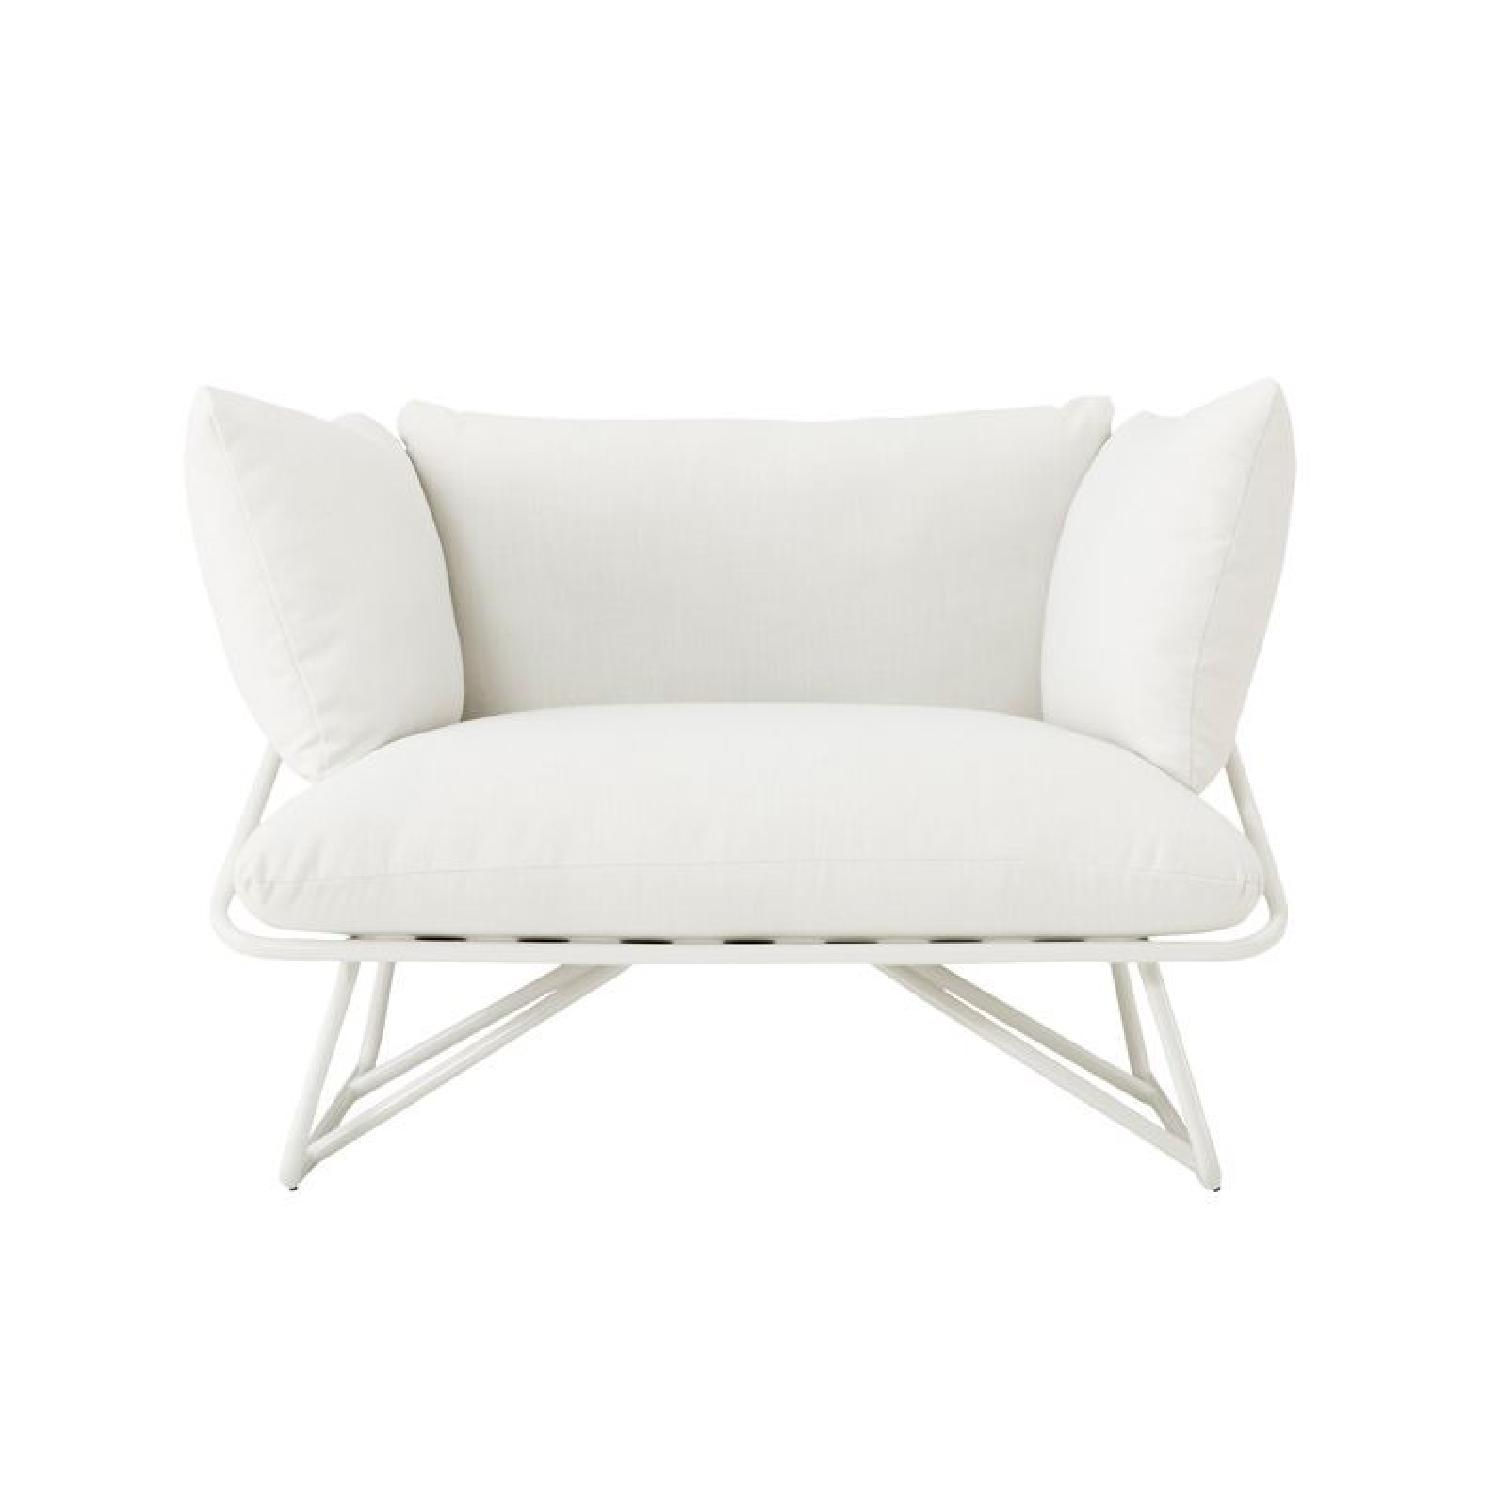 CB2 Pool Party White Outdoor Lounge Chair